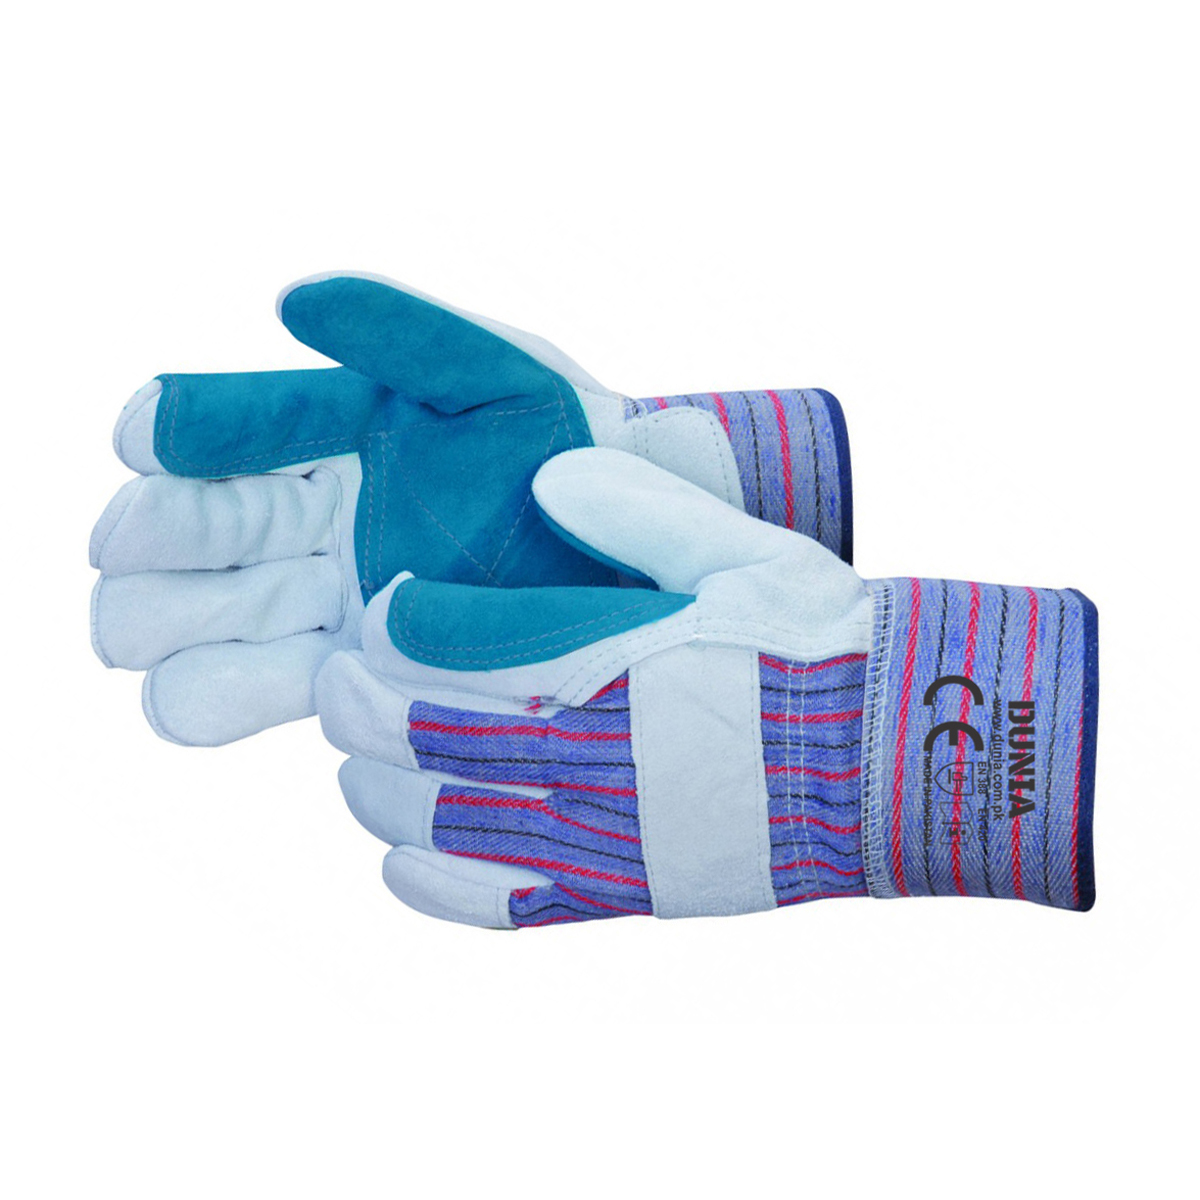 DTC-791 Work Gloves Double Palm